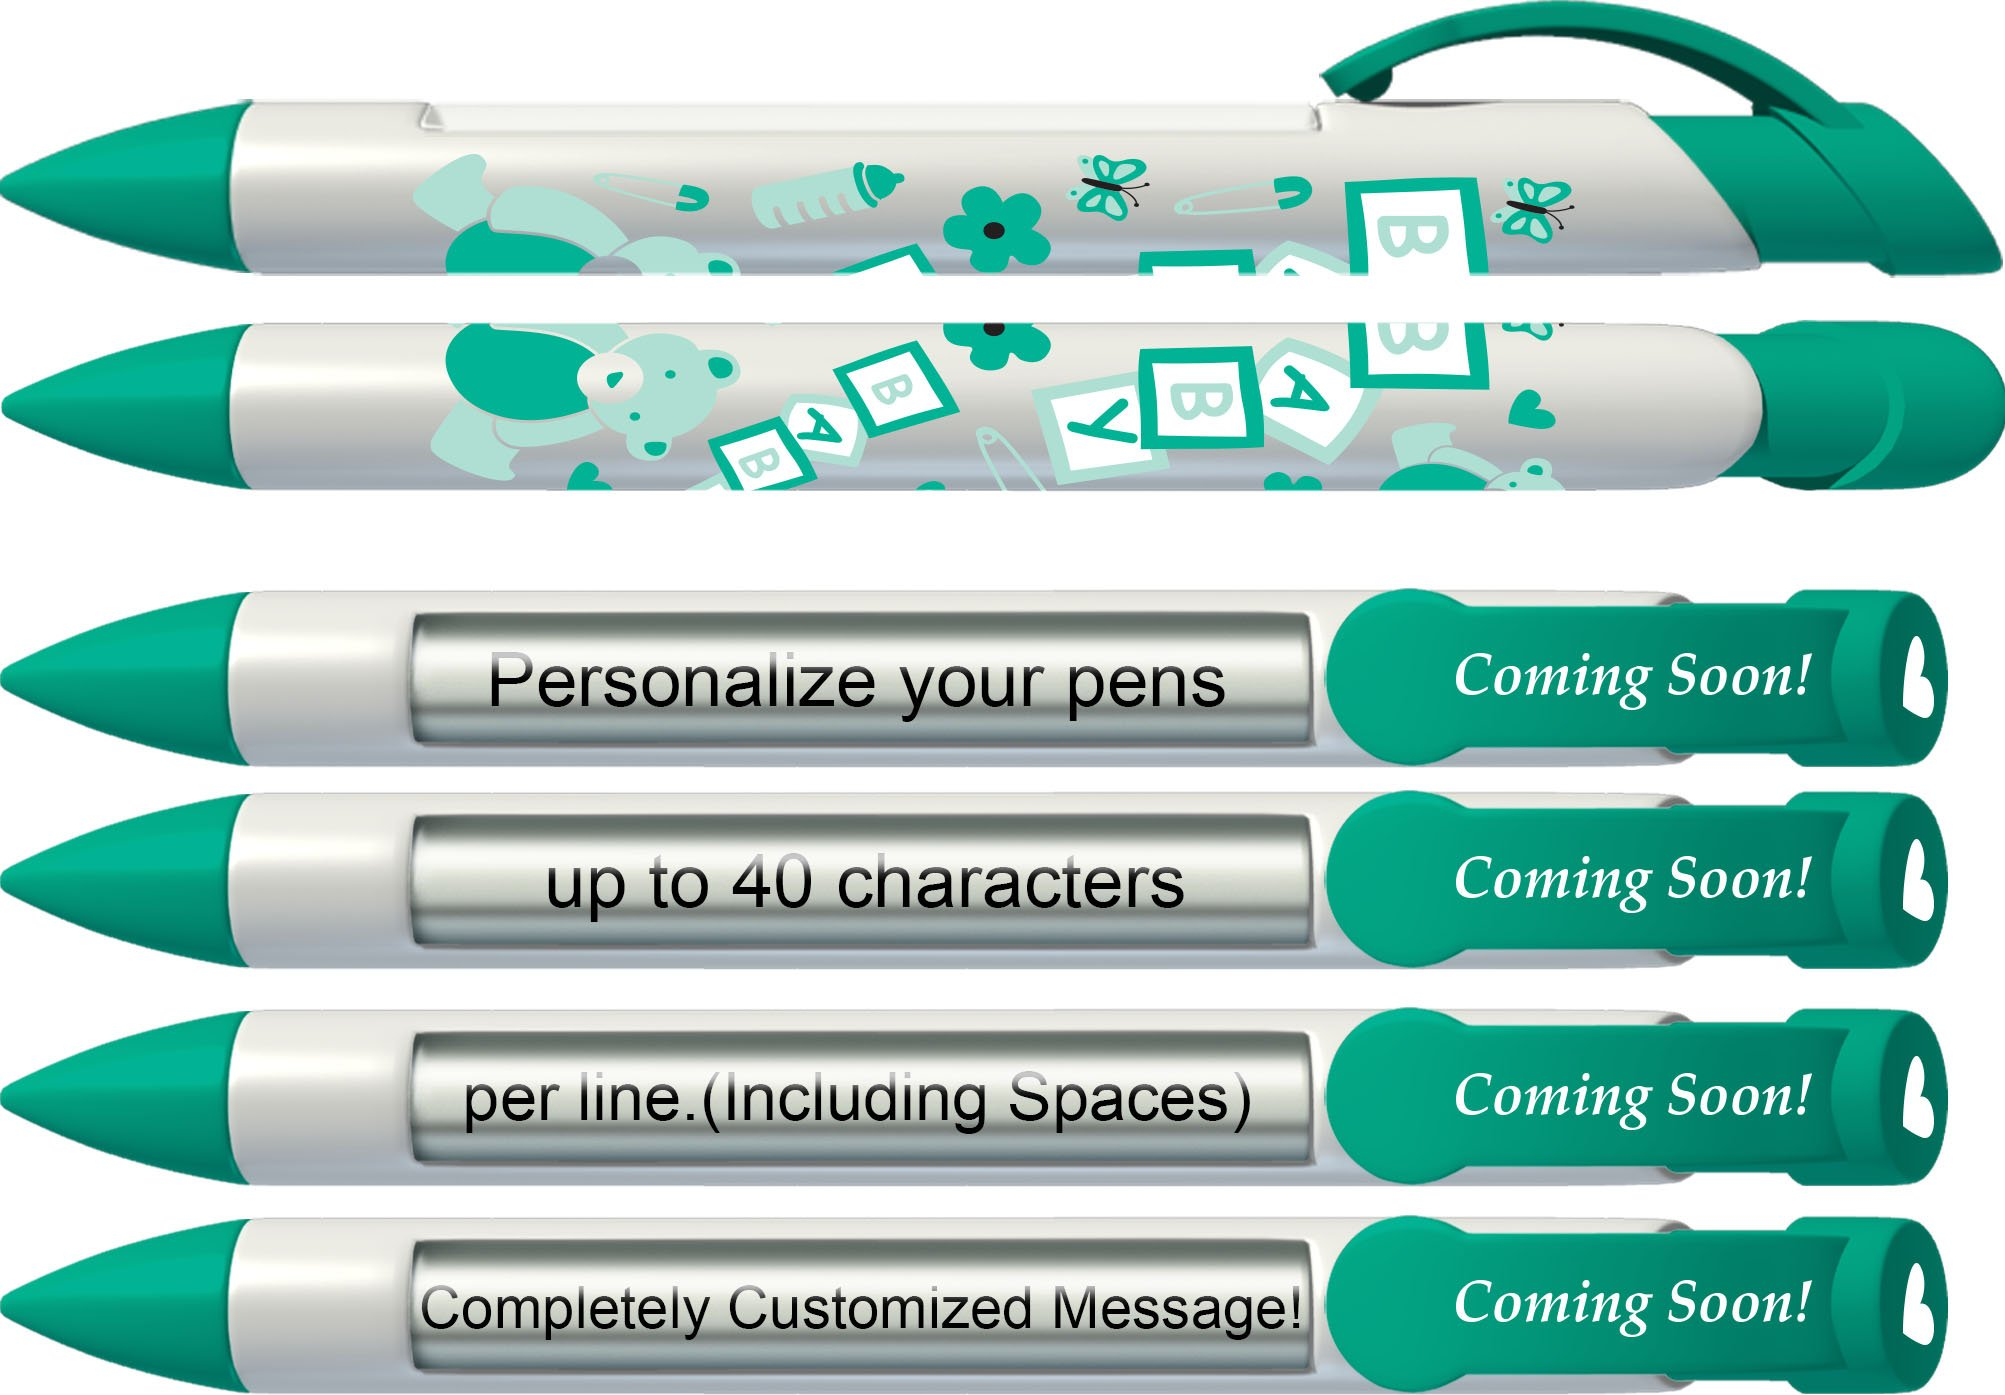 Baby Pen by Greeting Pen- Personalized Birth Announcement Pens- Baby Coming Soon Rotating Message Pen 50 pack (P-BP-27-50)